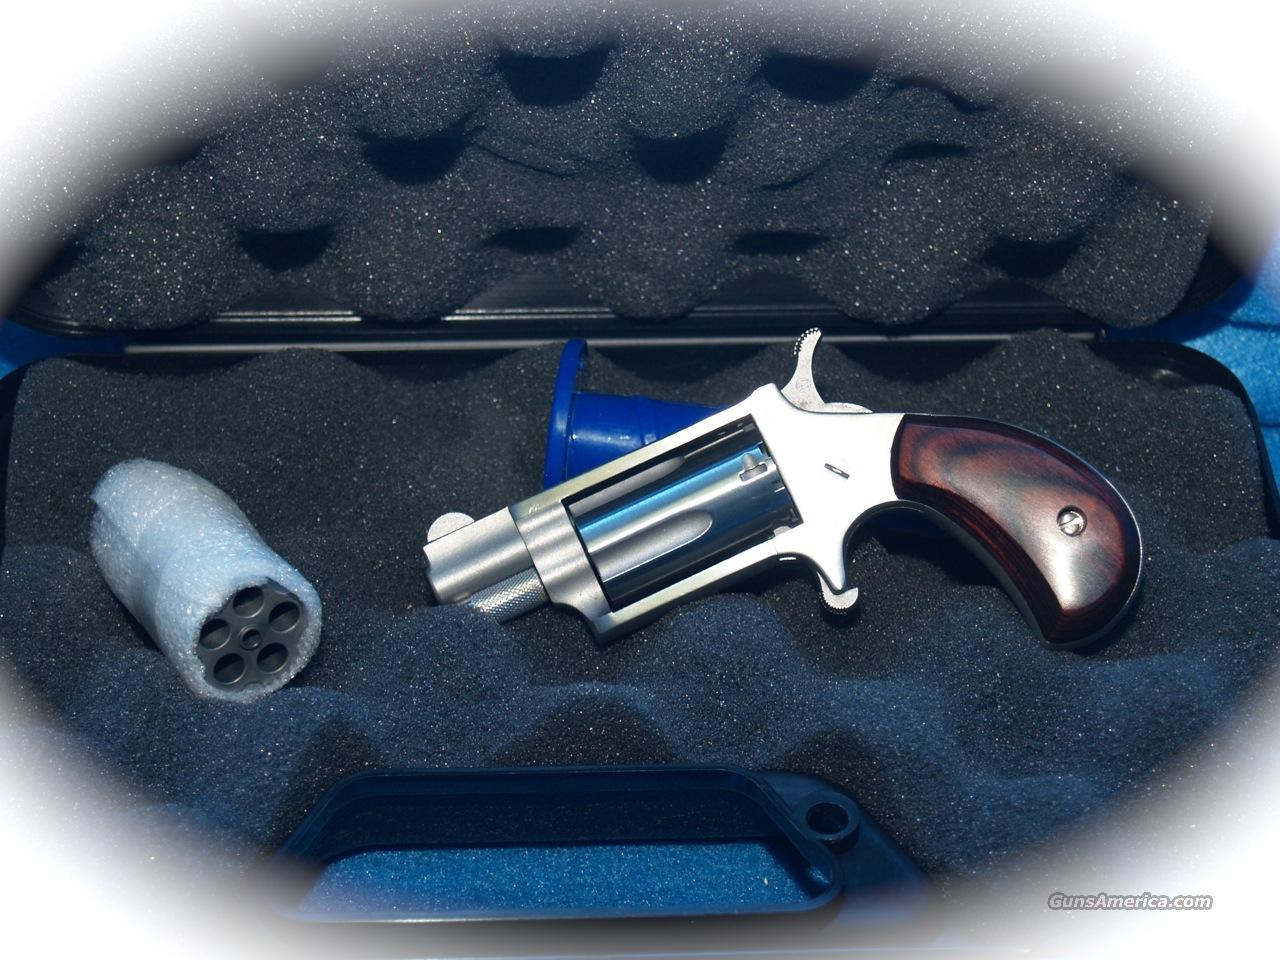 North American Arms 22Mag Mini Revolver + Xtra 22 LR Cylinder  Guns > Pistols > North American Arms Pistols